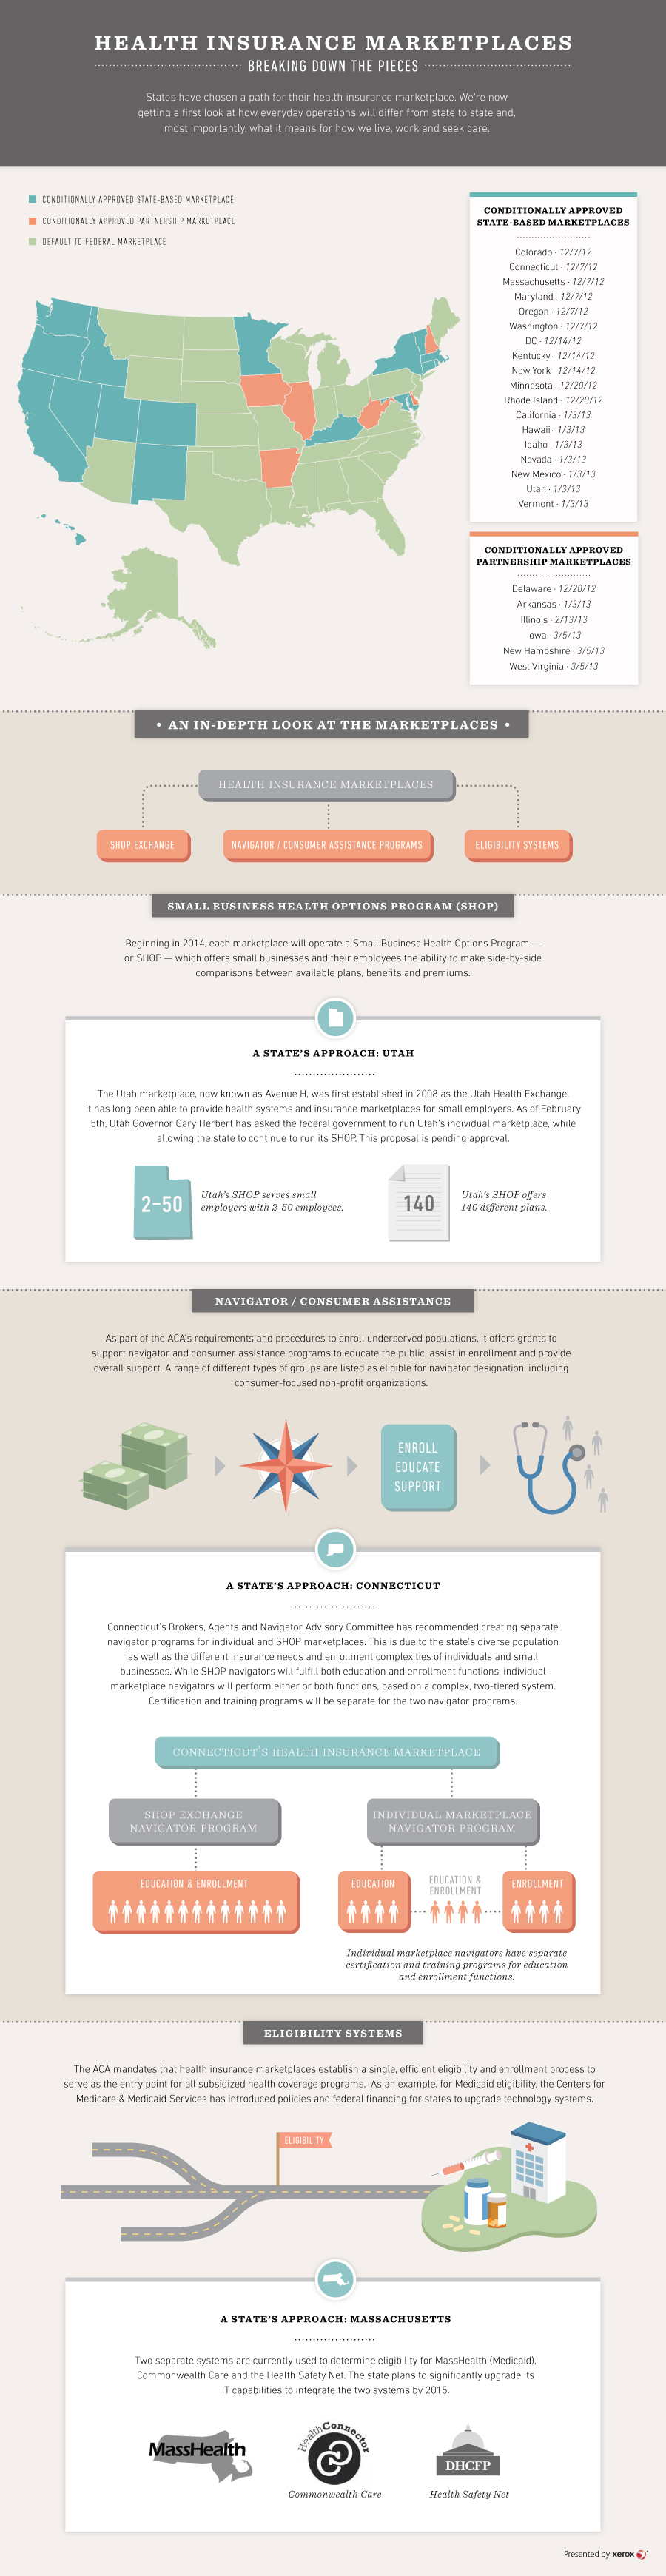 Sjr Infographic Healthbiz Decoded Health Insurance